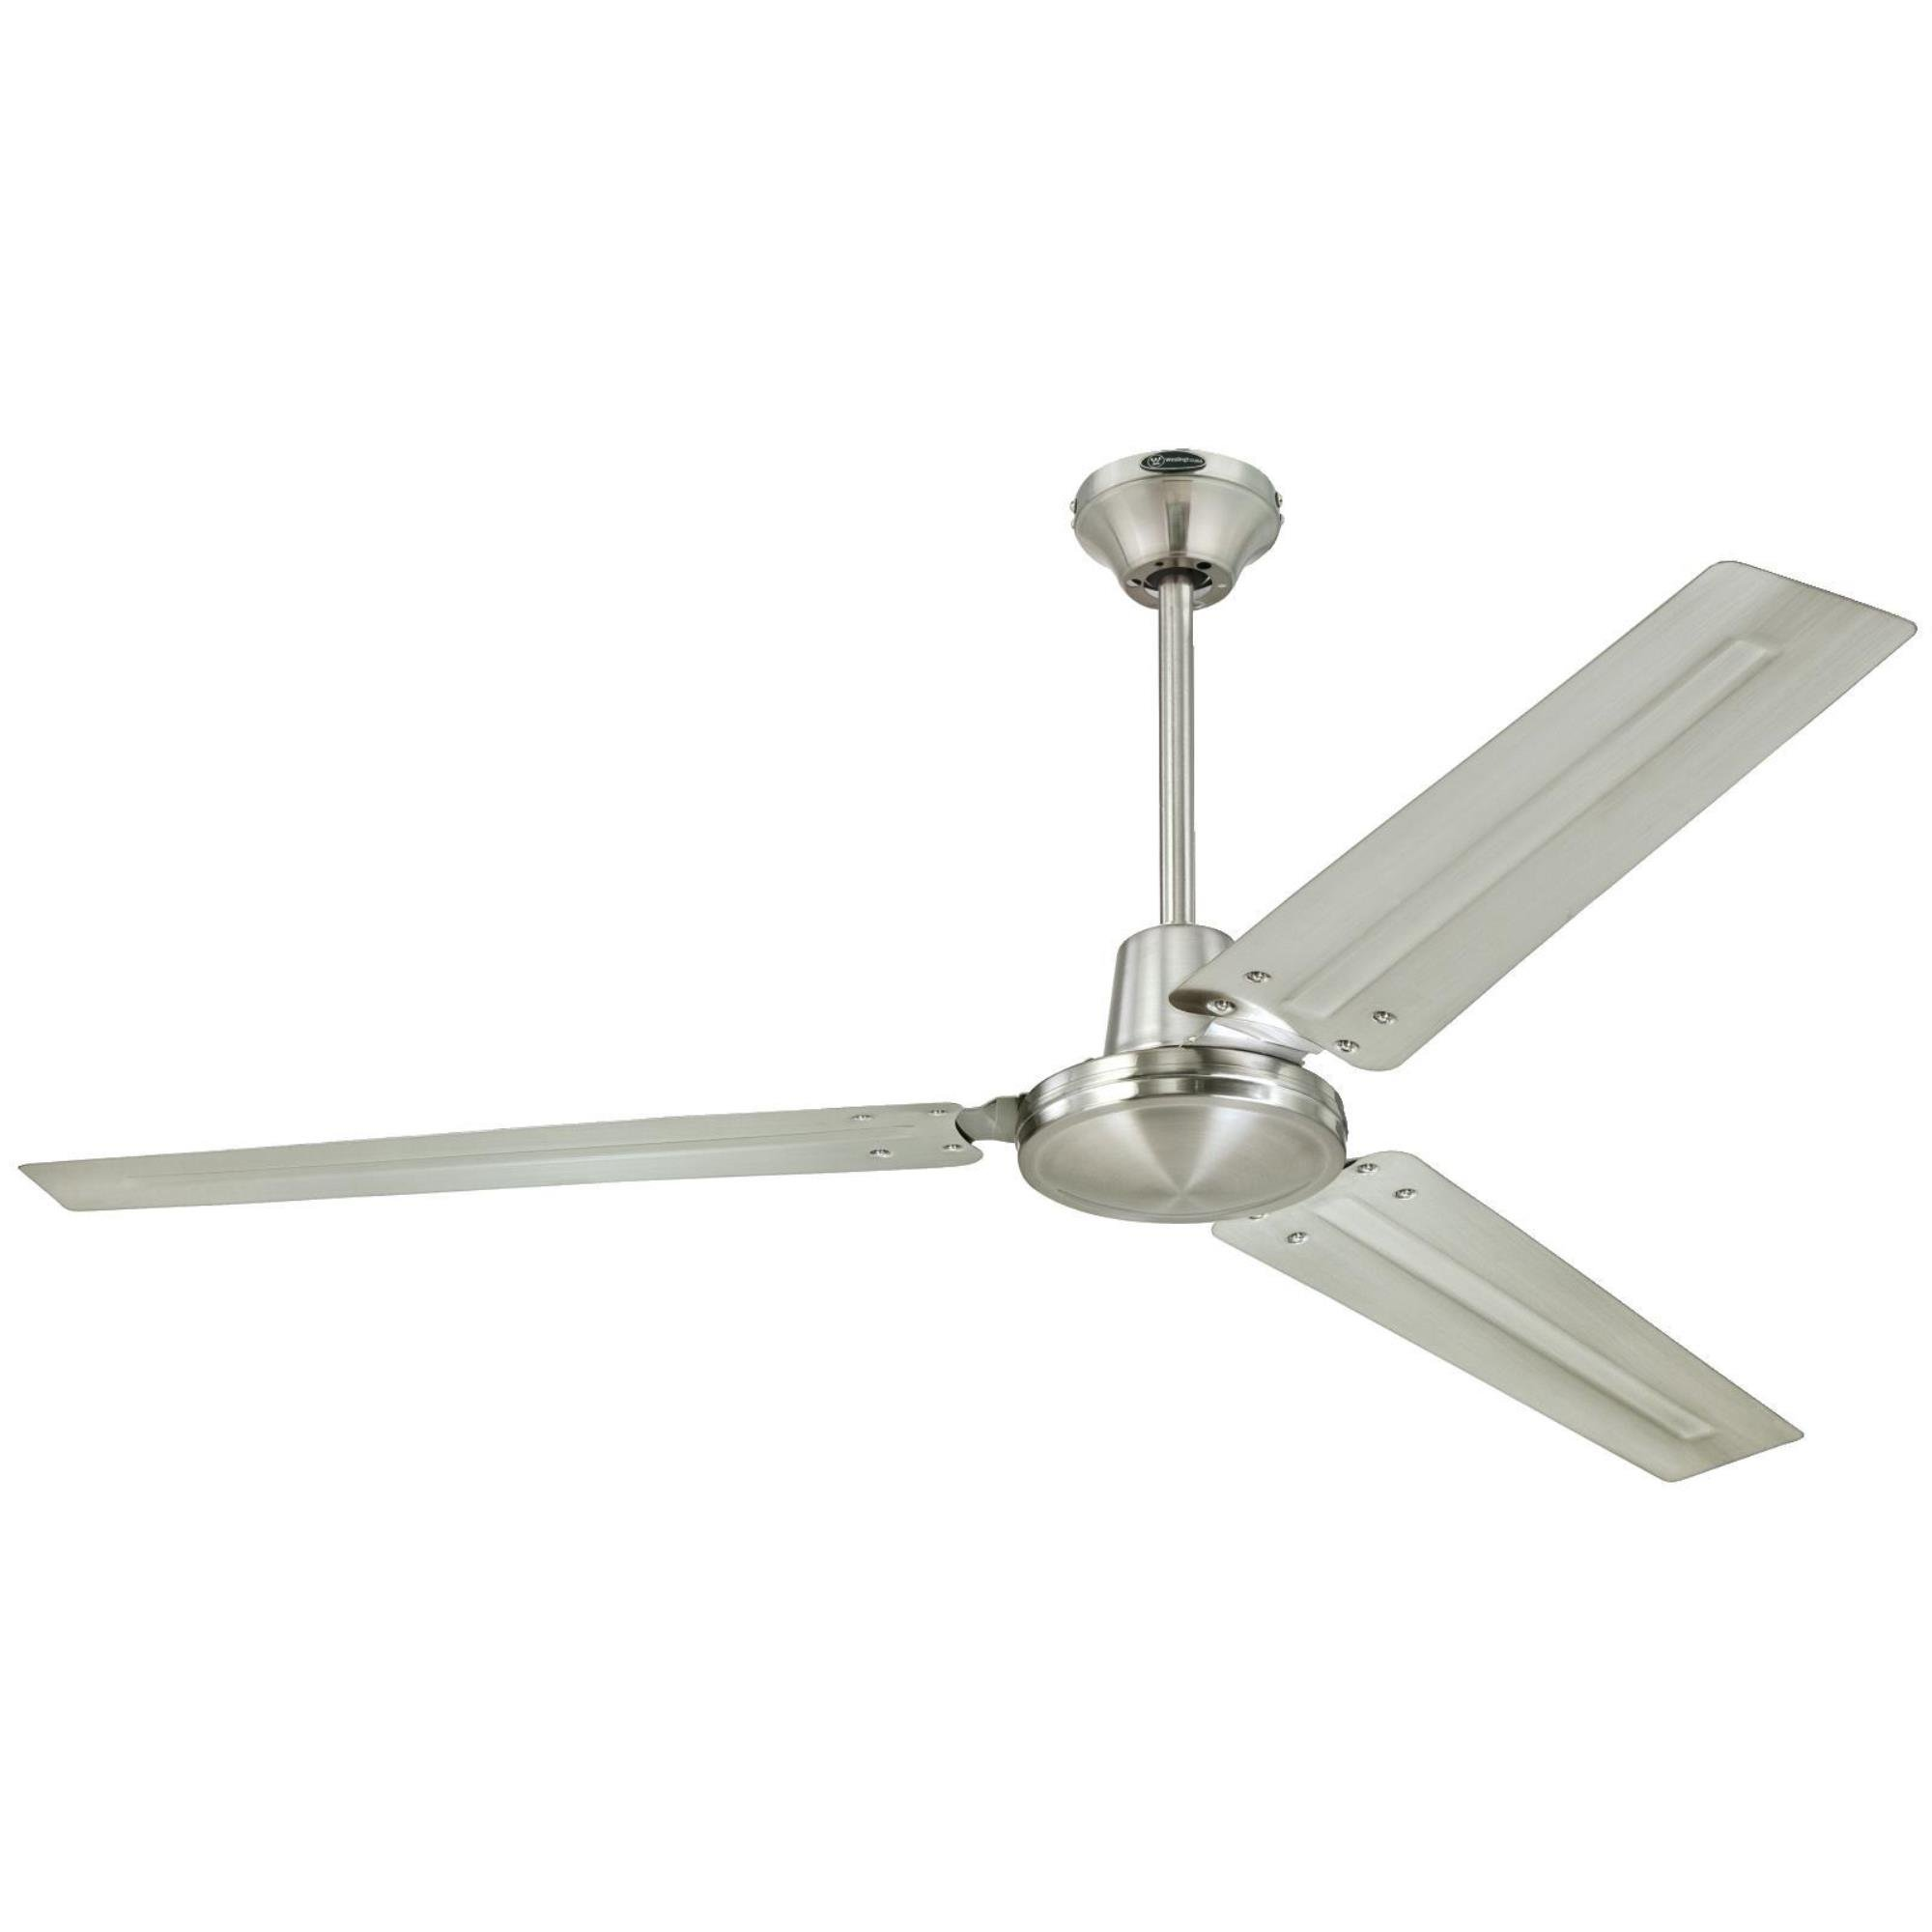 Westinghouse Lighting 7861400 Industrial 56-Inch Three-Blade Indoor Ceiling Fan, Brushed Nickel with Brushed Nickel Steel Blades by Westinghouse Lighting (Image #1)